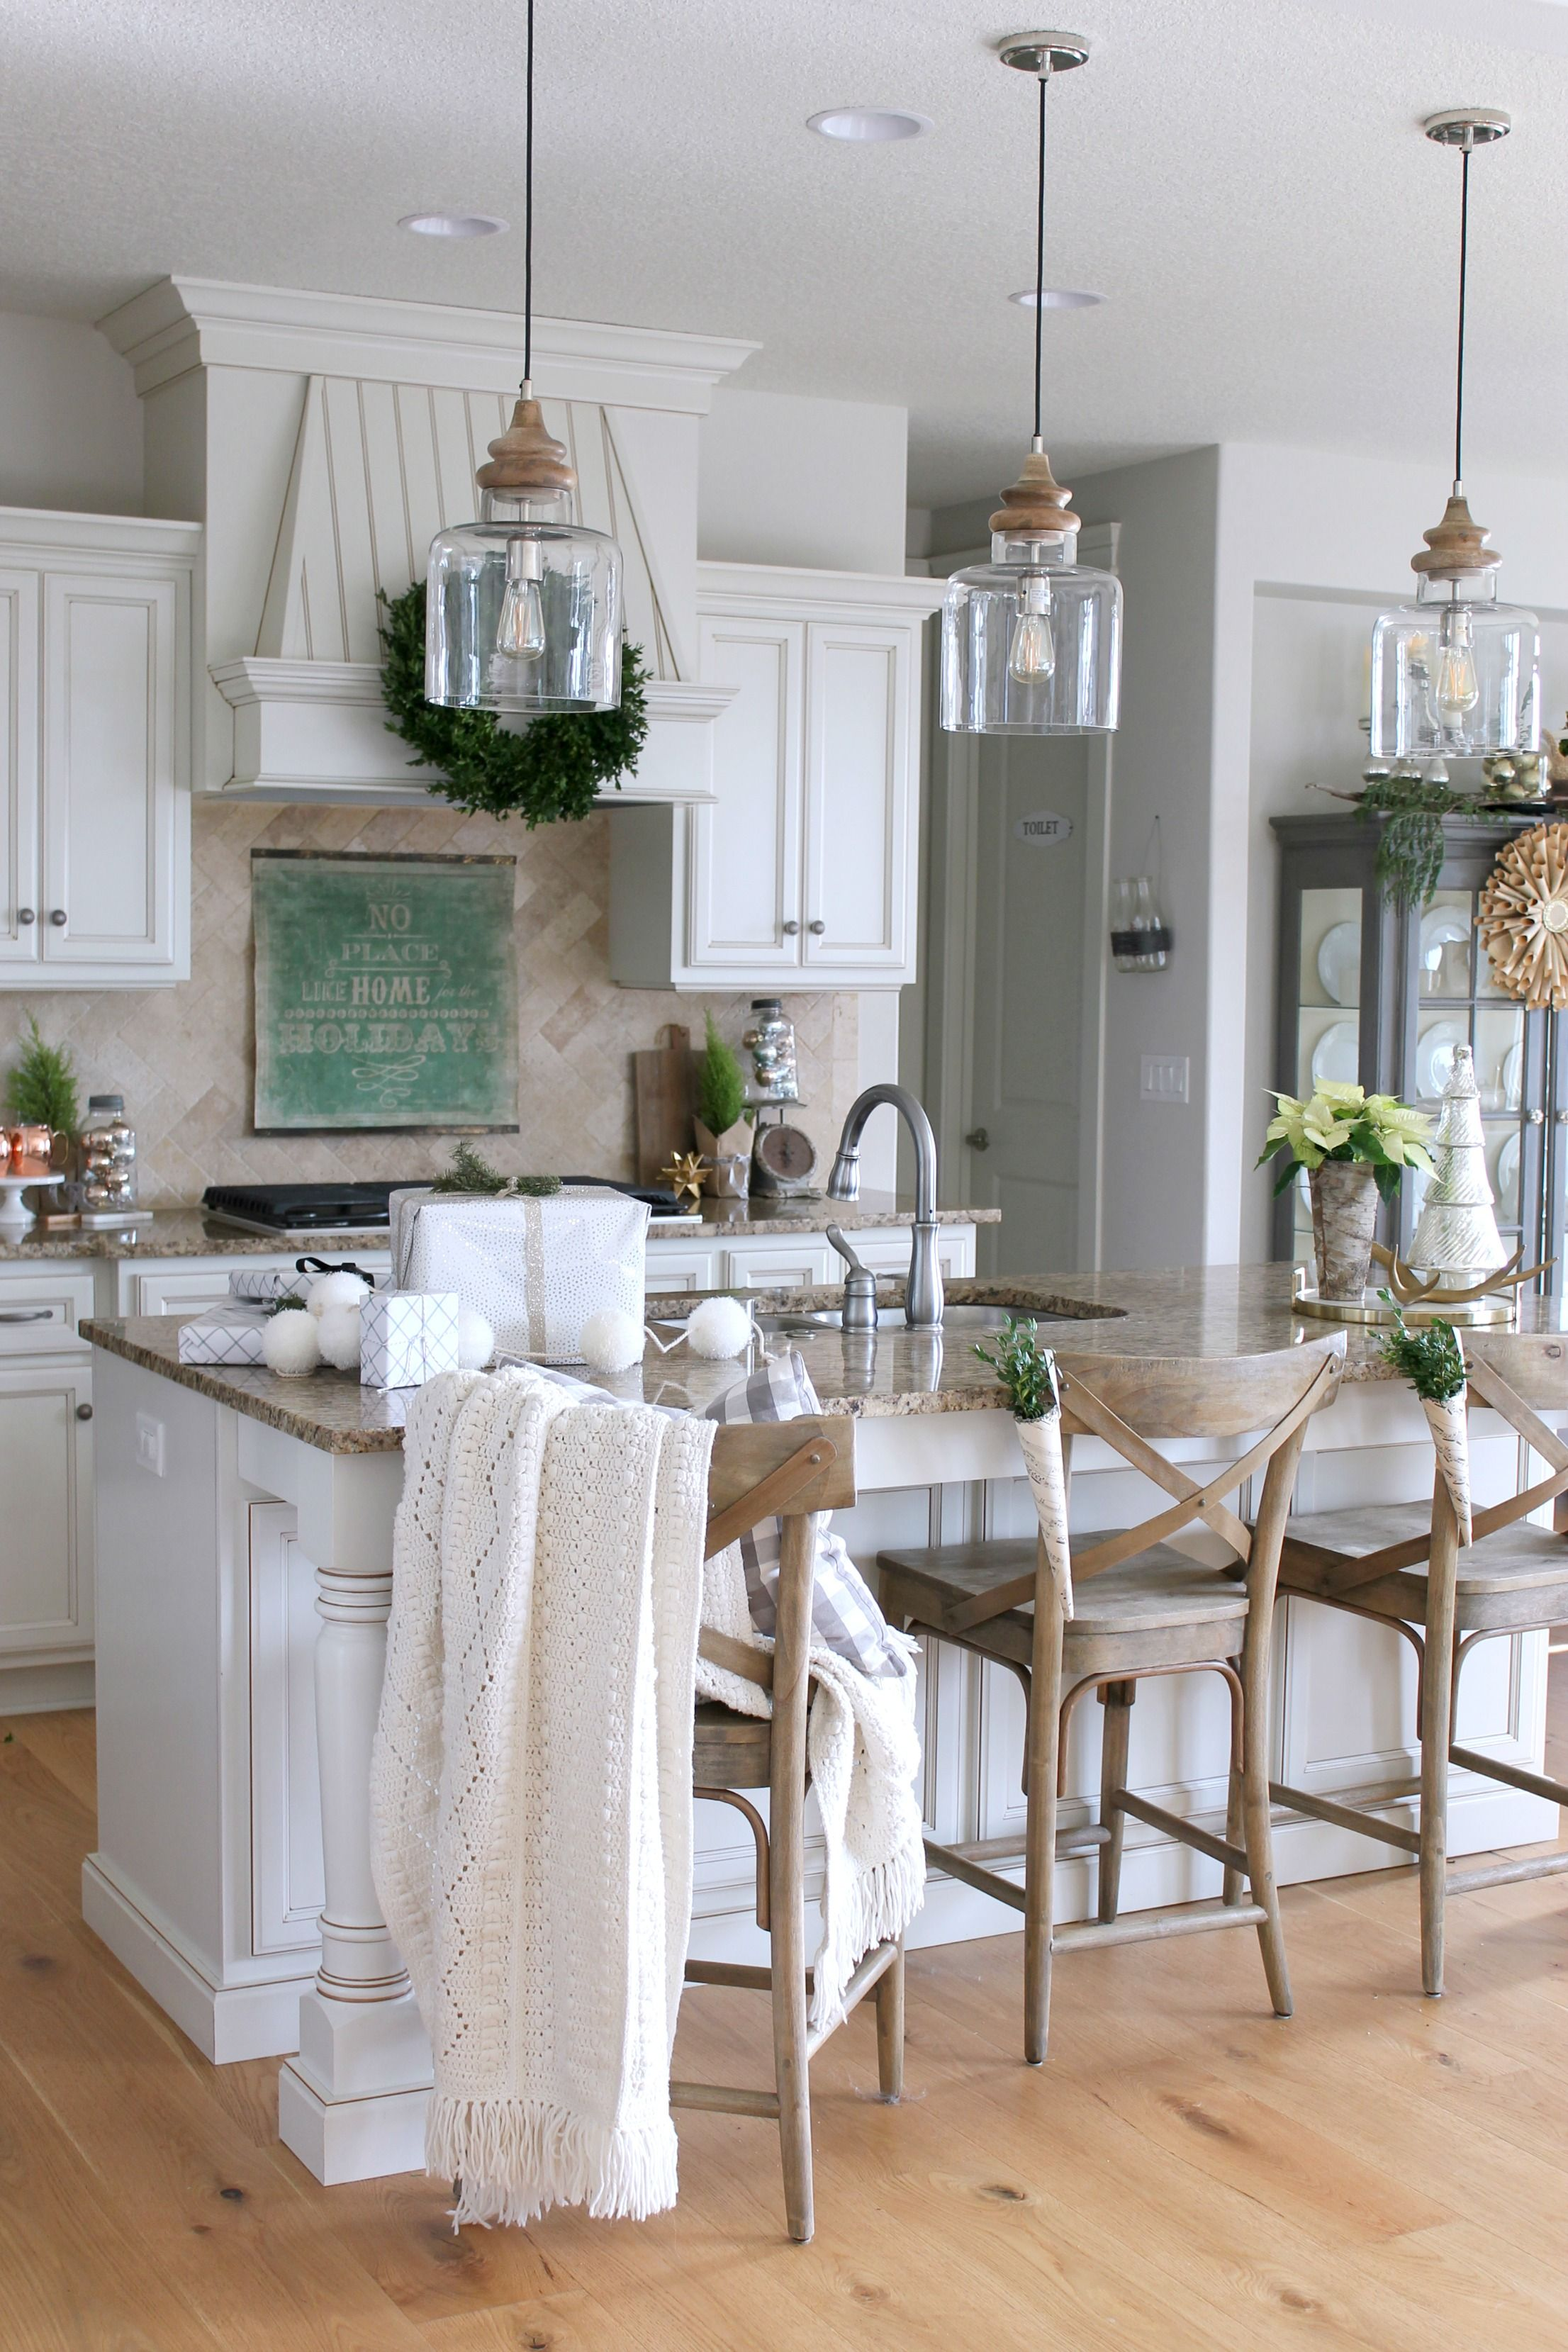 New Farmhouse Style Island Pendant Lights Adrienne Elizabeth